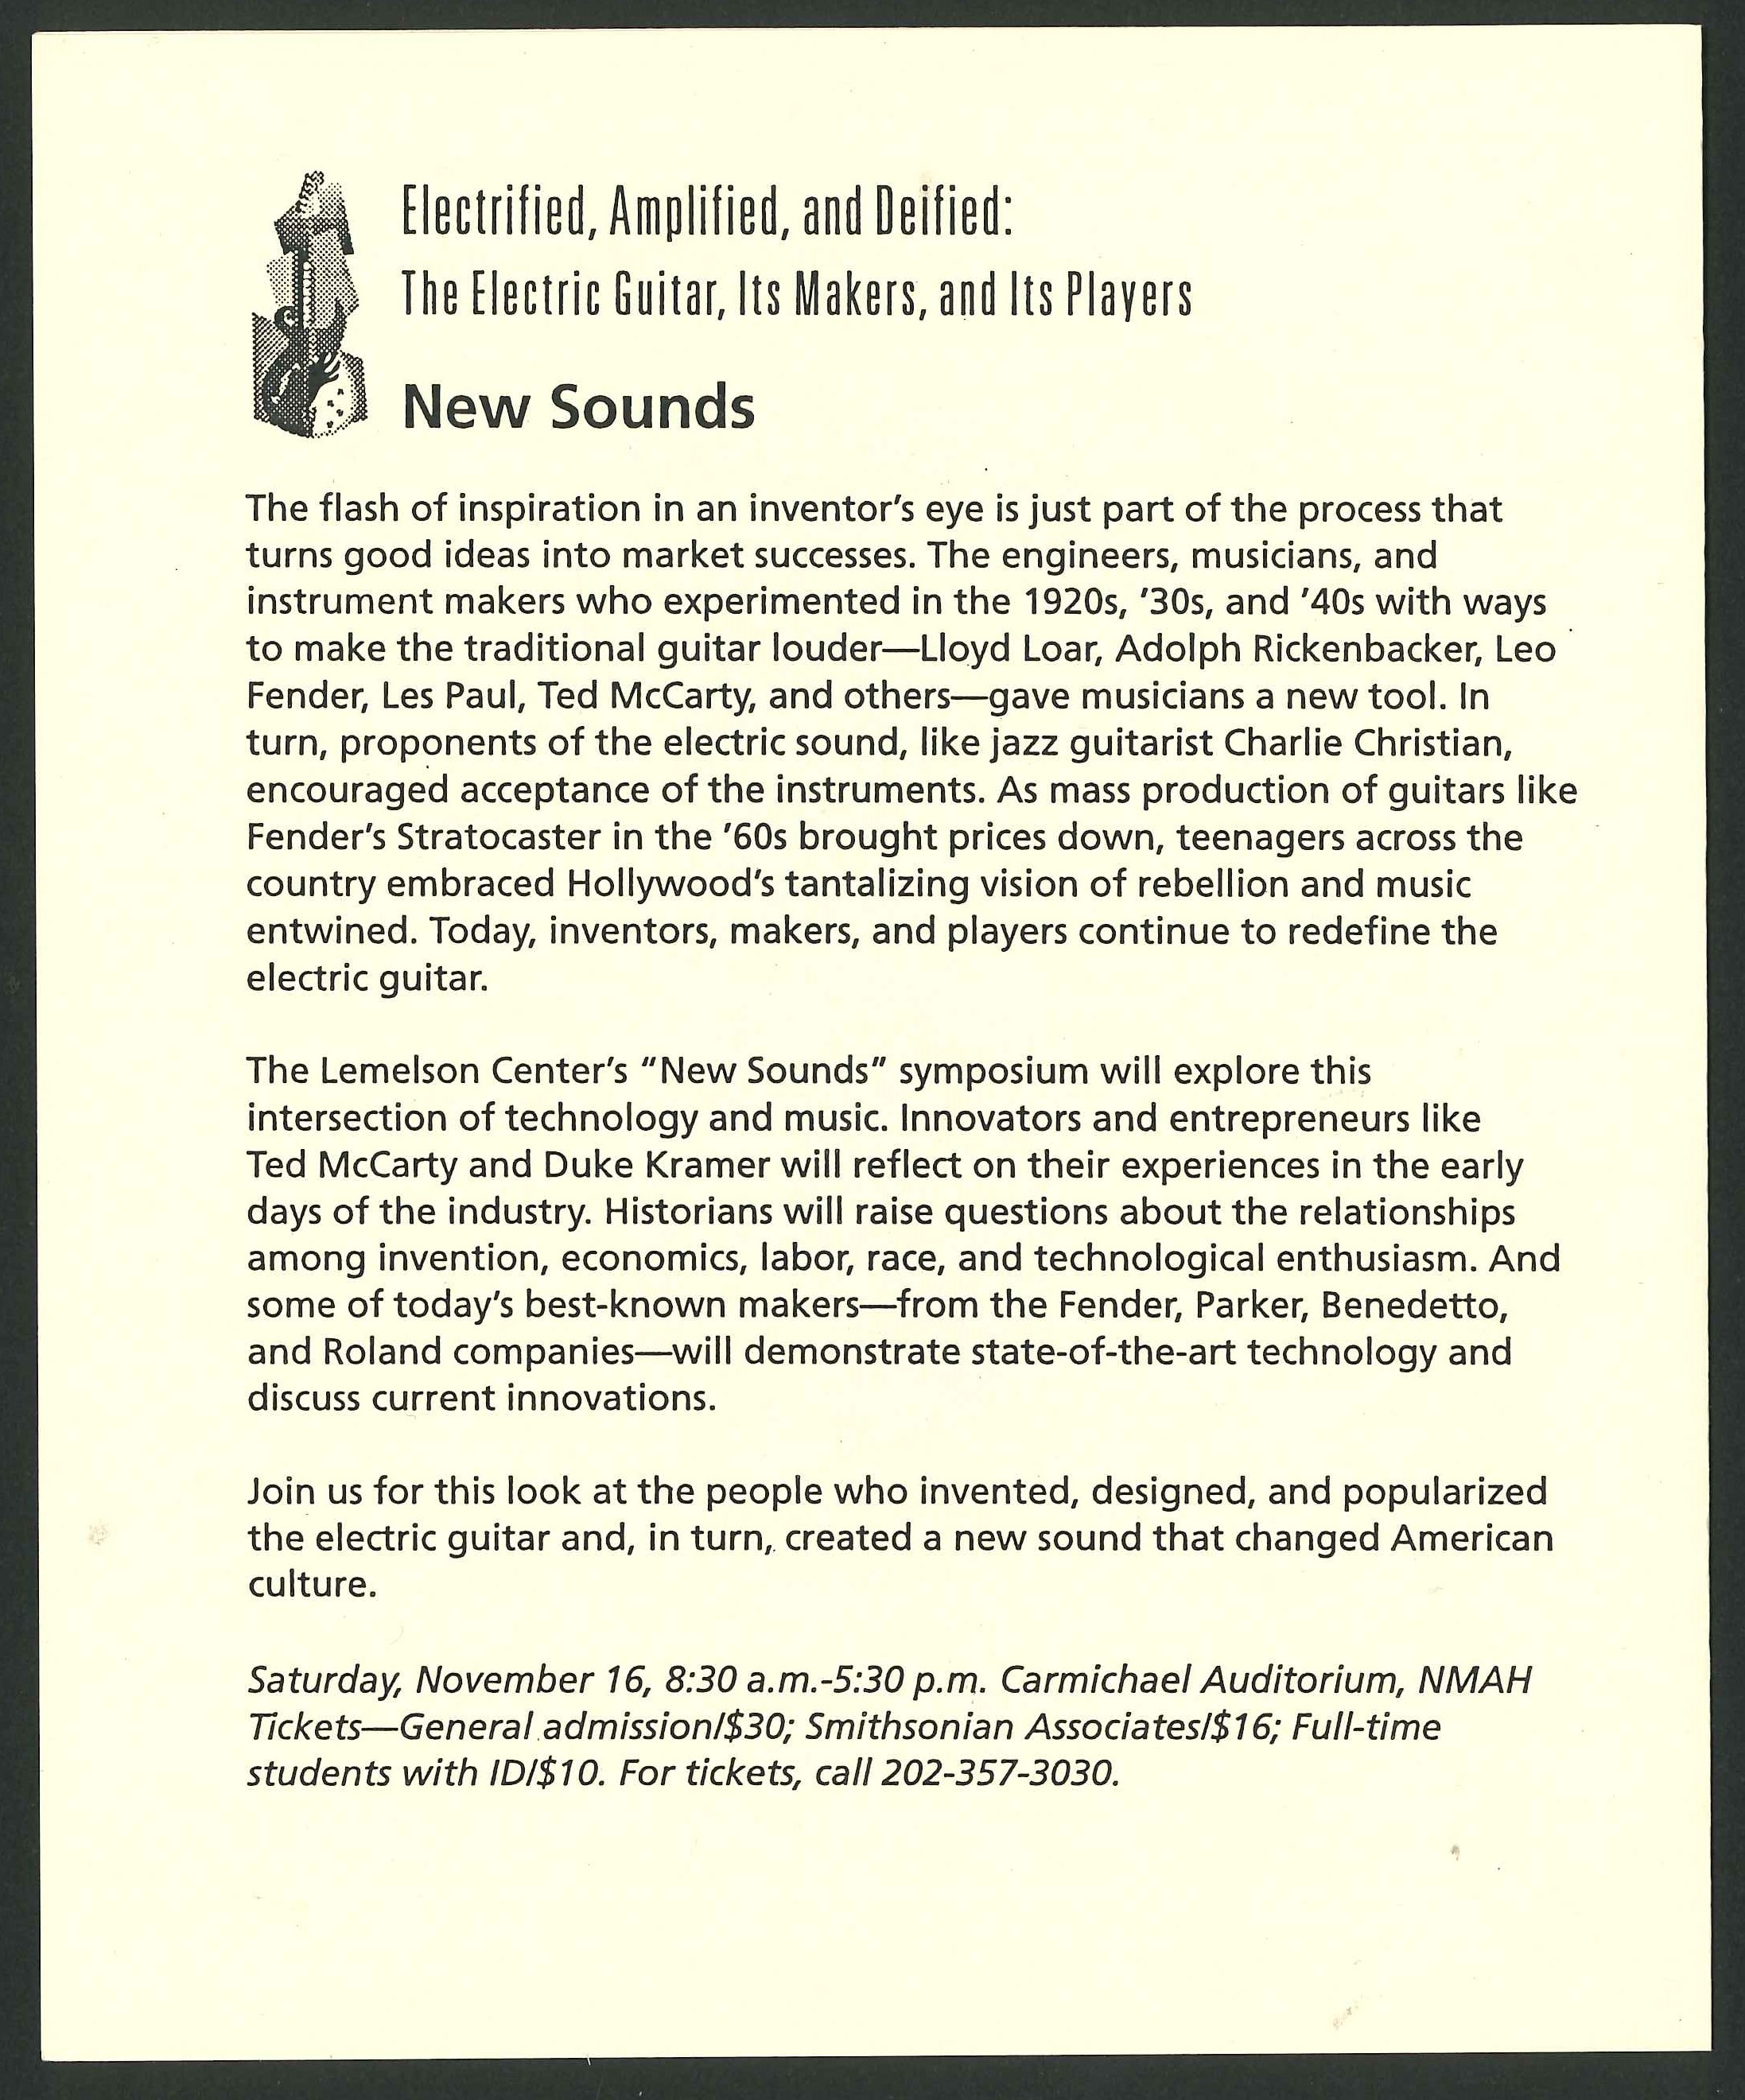 First page of the program for the New Sounds symposium at the National Museum of American History on